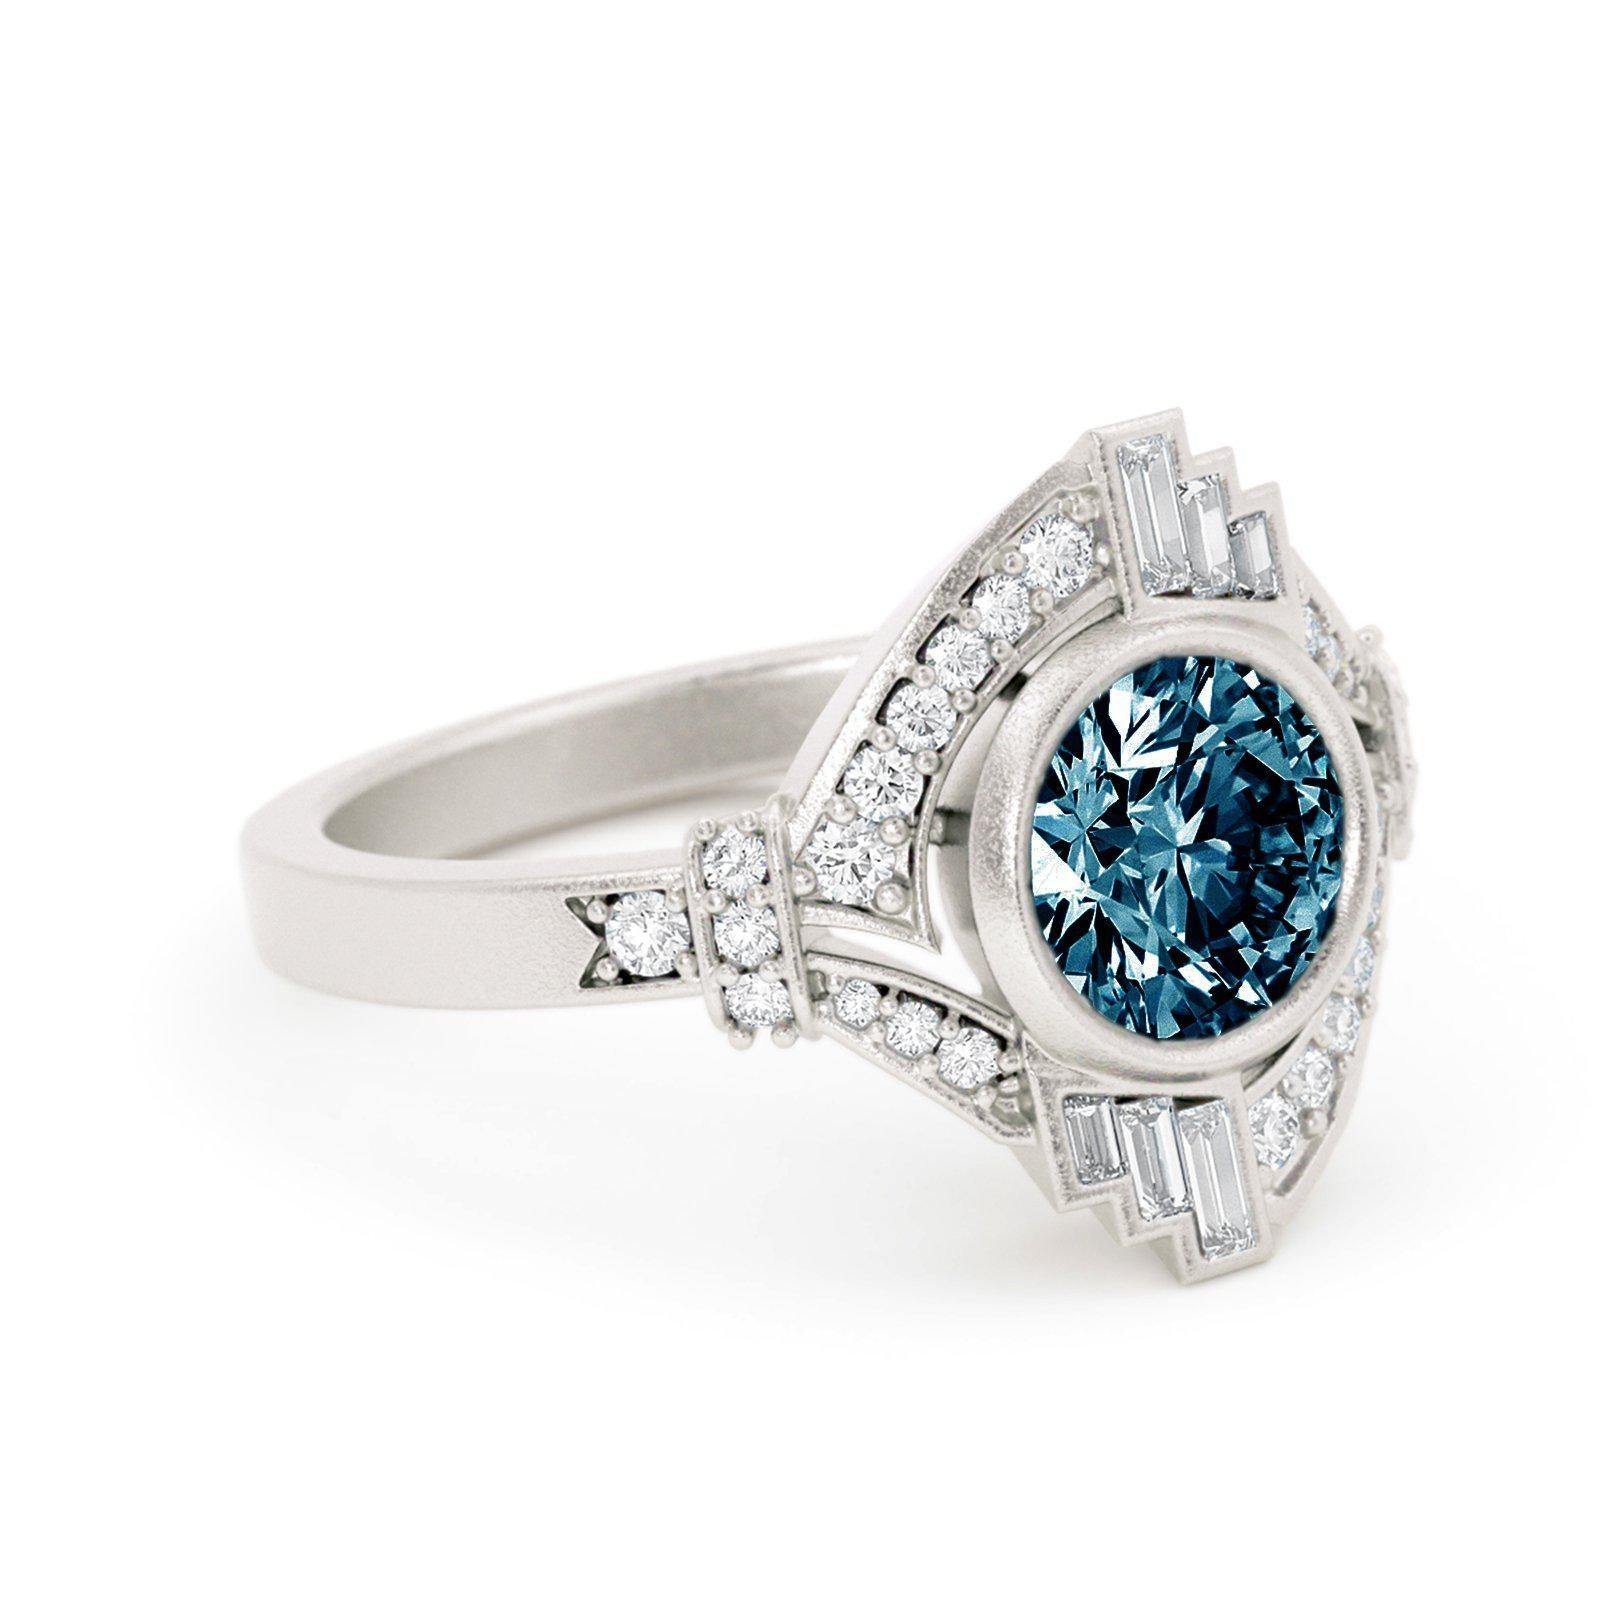 Mabel Louise Art Deco Montana Sapphire Ring White Gold